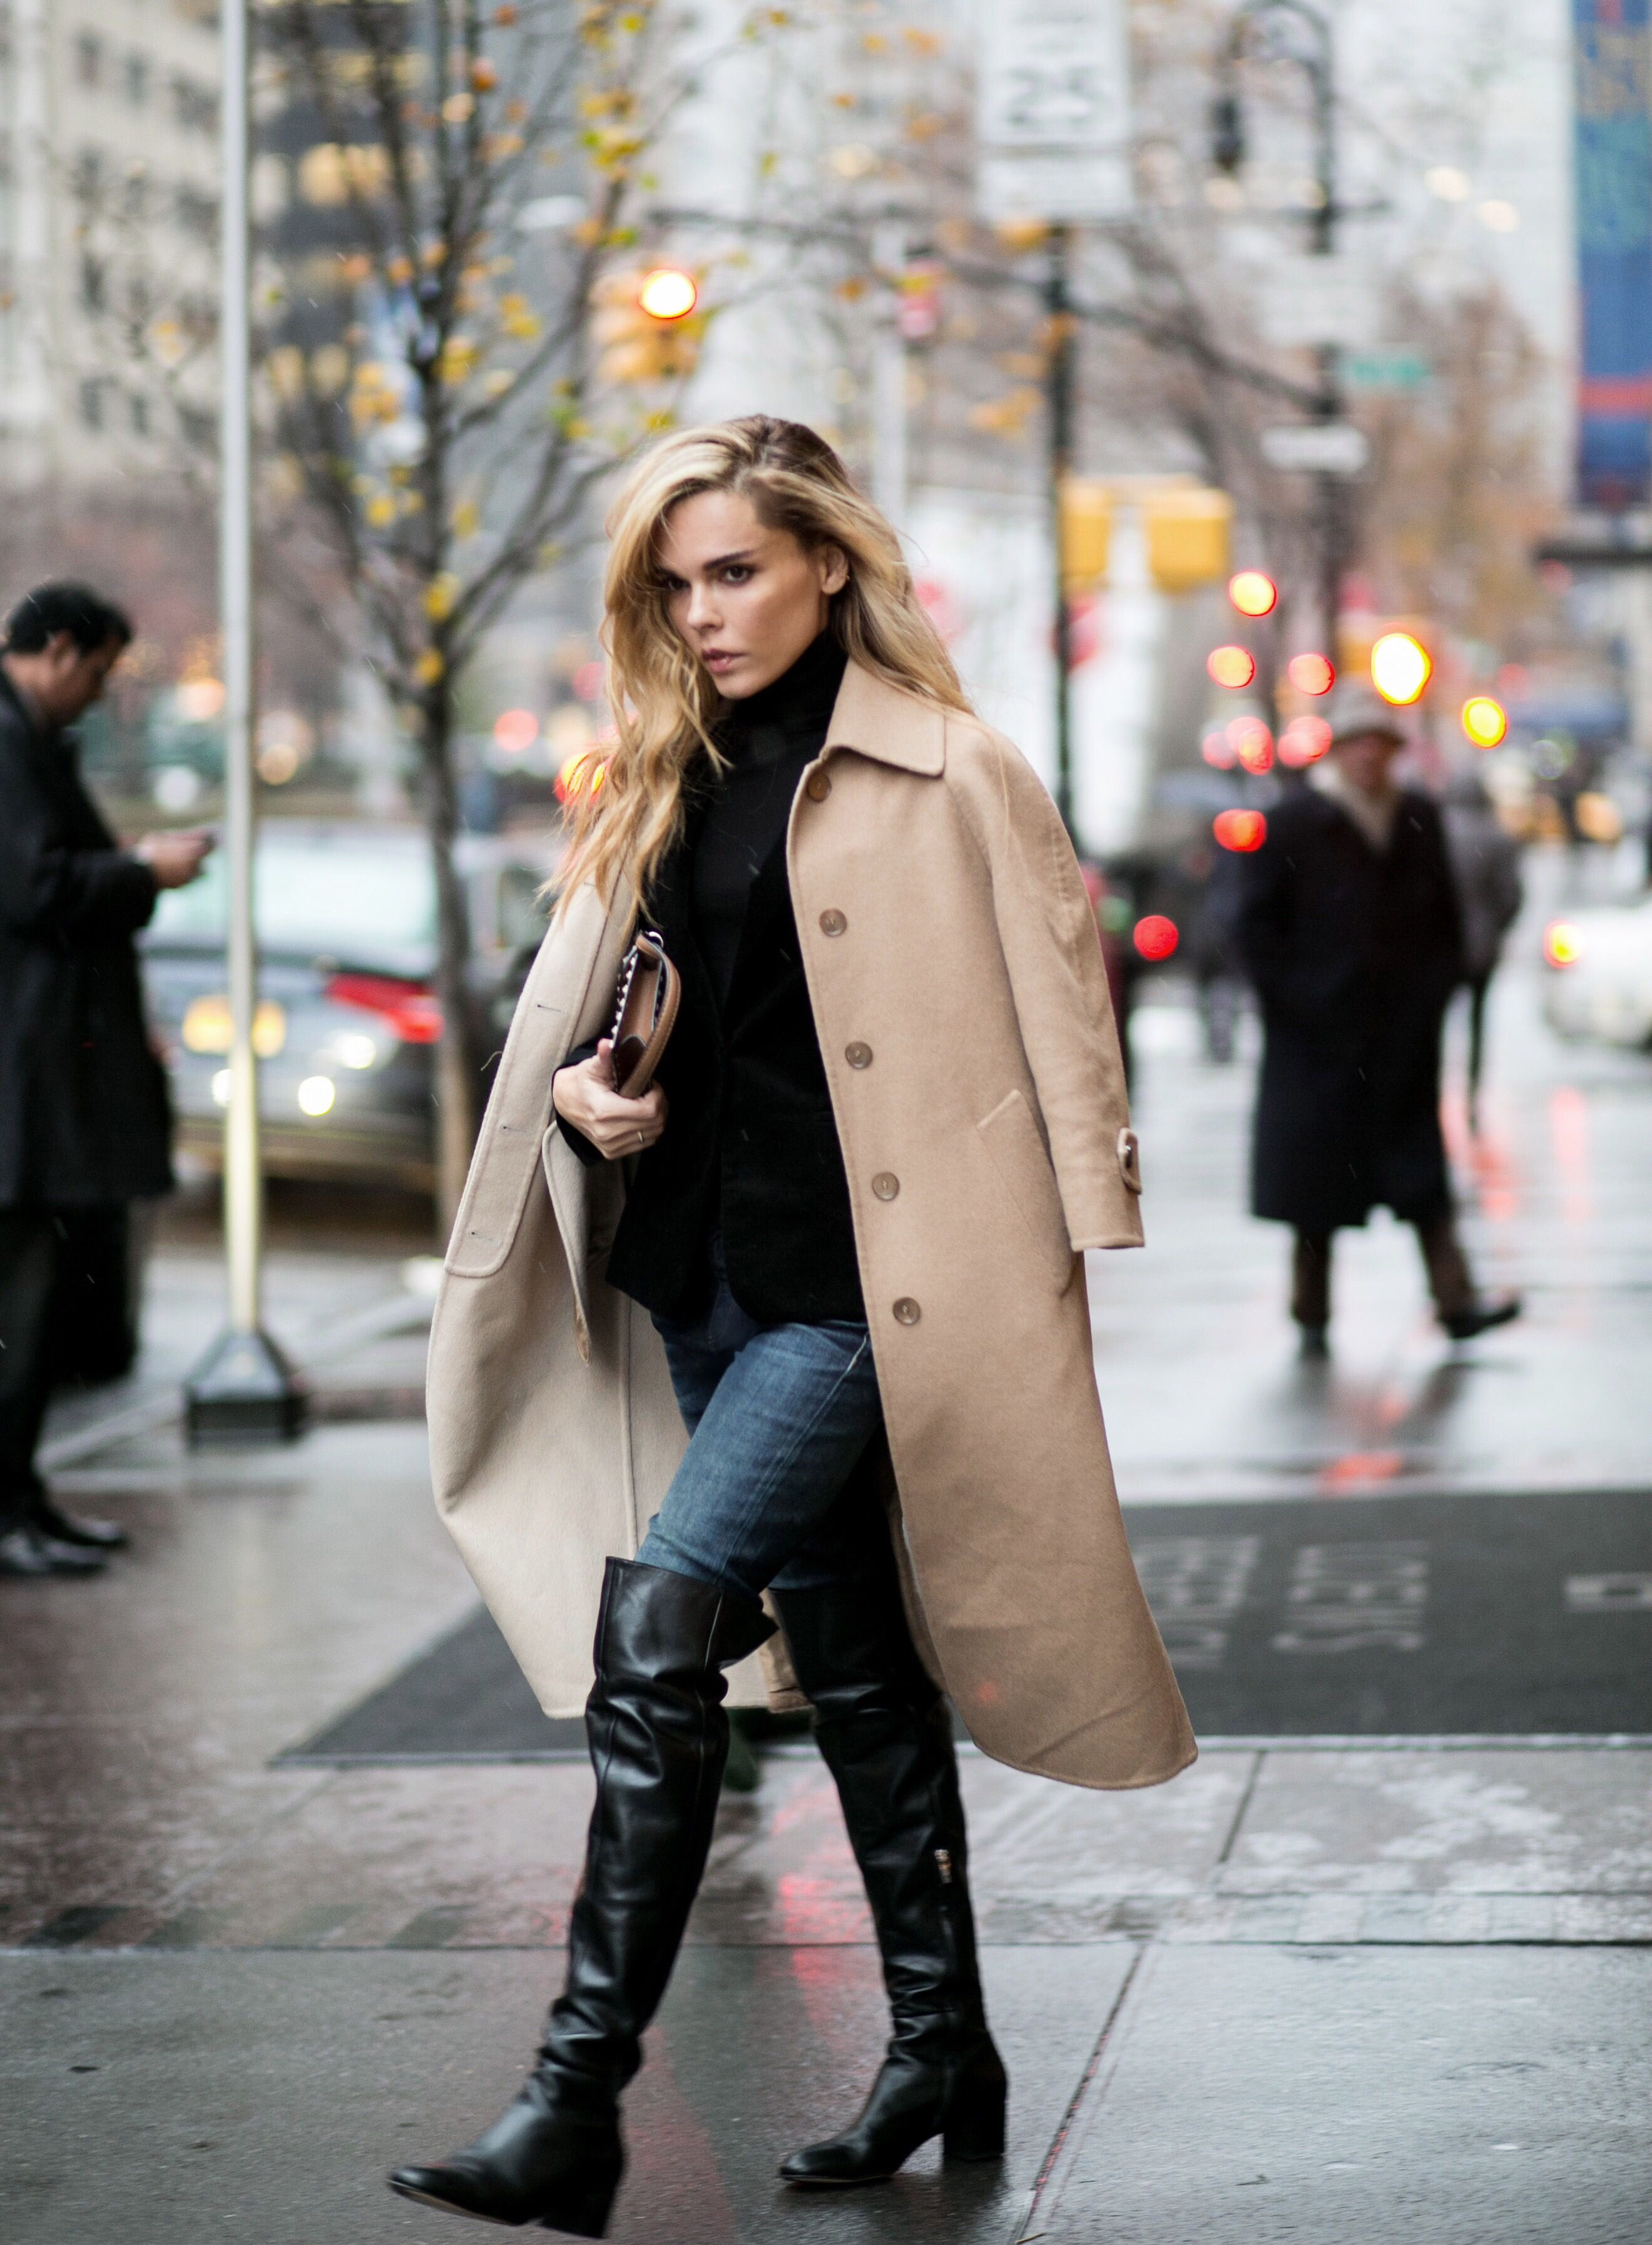 How to wear tall boots fall 2017